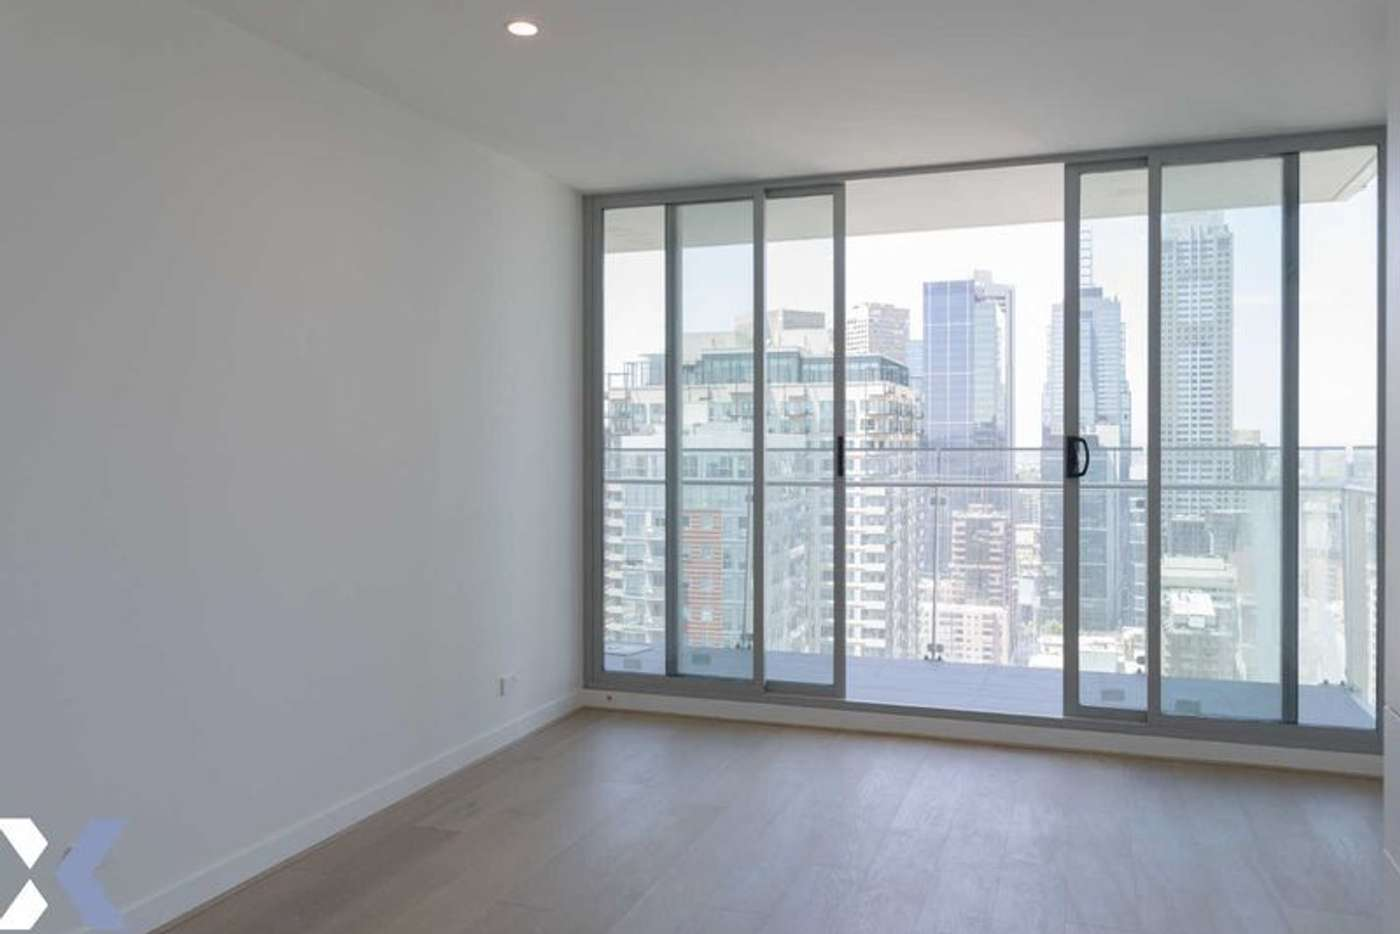 Main view of Homely apartment listing, 1506/36 La Trobe Street, Melbourne VIC 3000